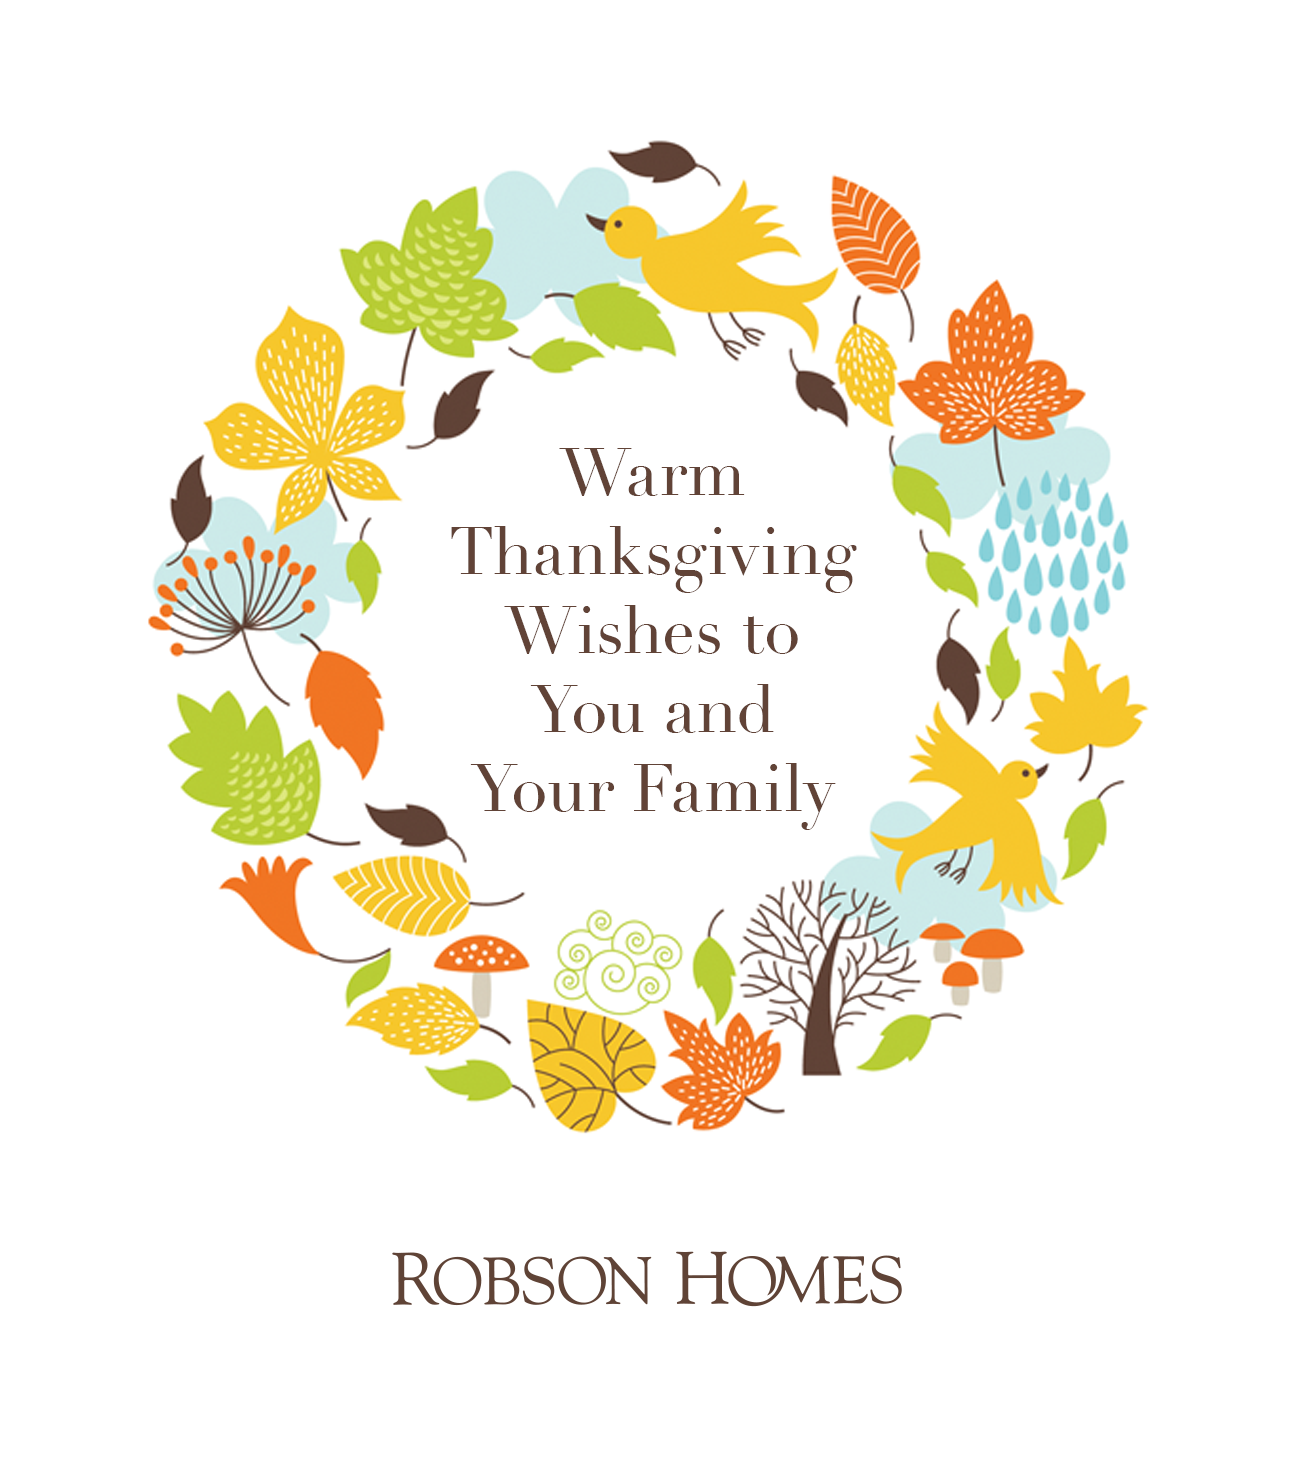 Robson Homes Thanksgiving Email 2015